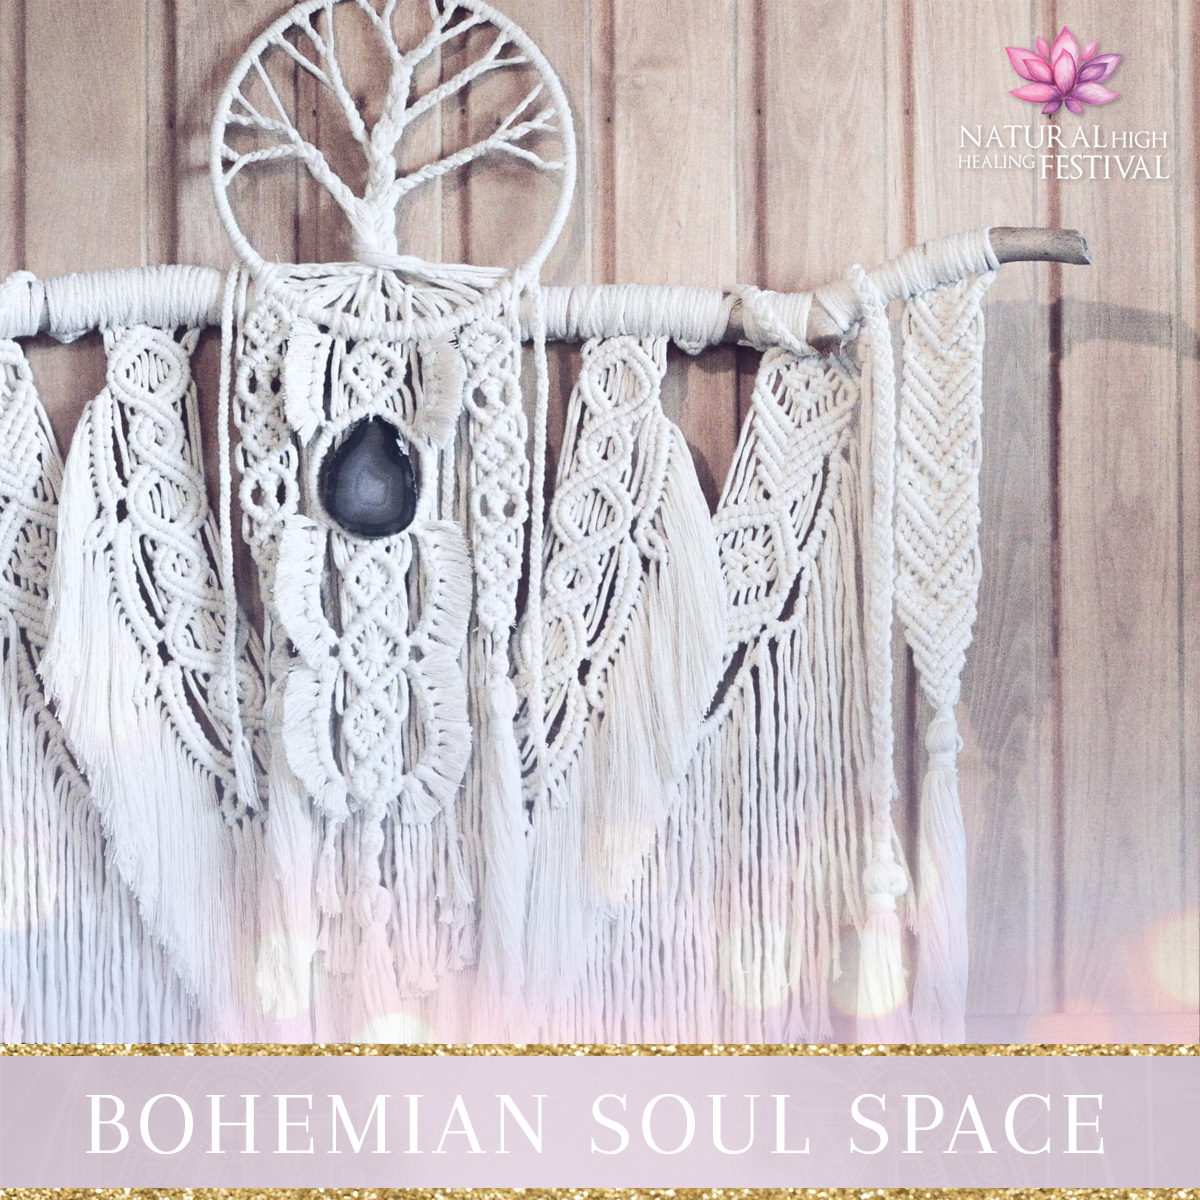 Bohemian soul space at Natural High Festival